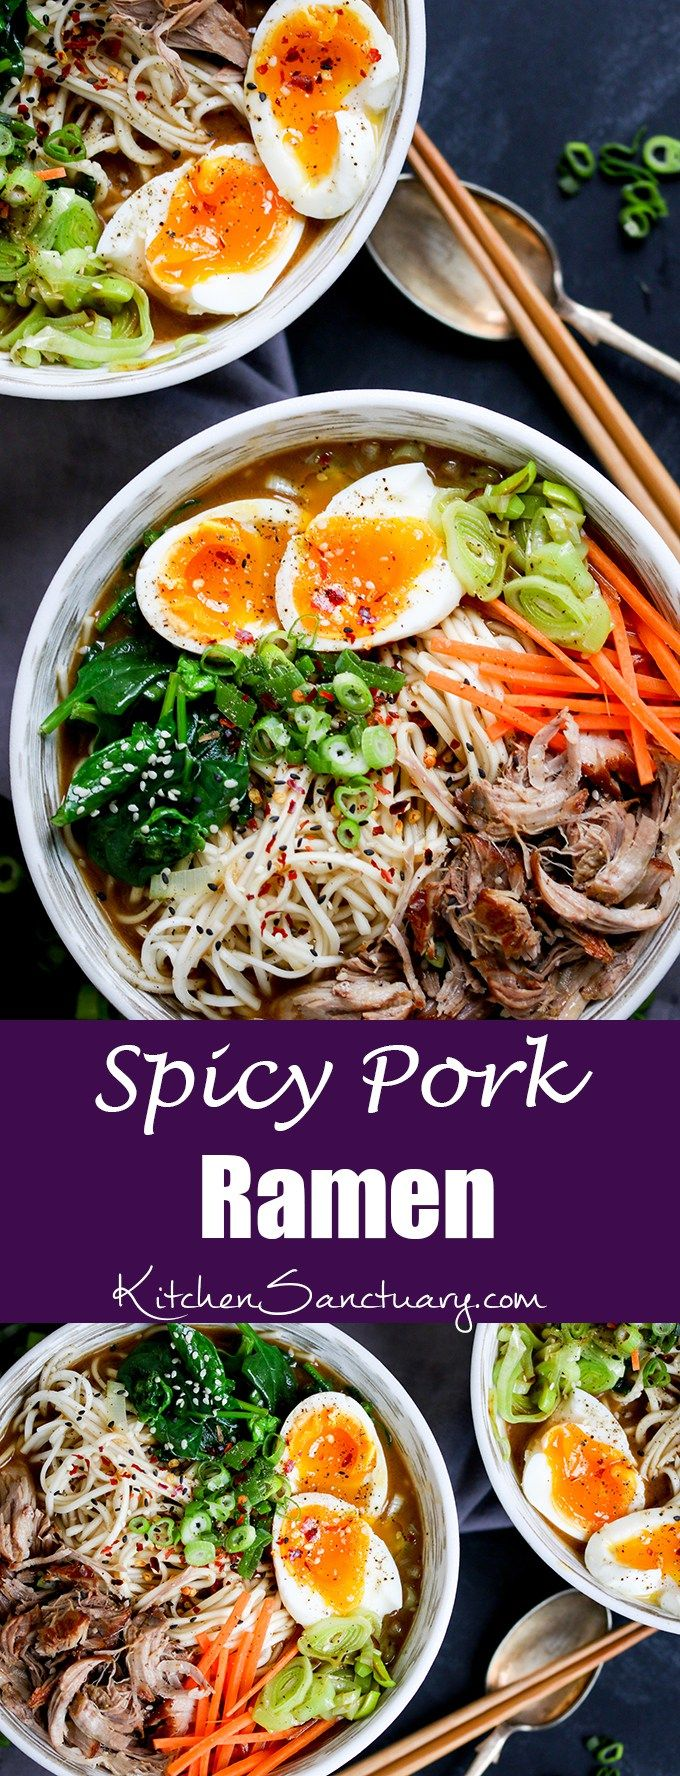 Spicy Pork Ramen - Slow cooked pork with noodles, veggies and a…